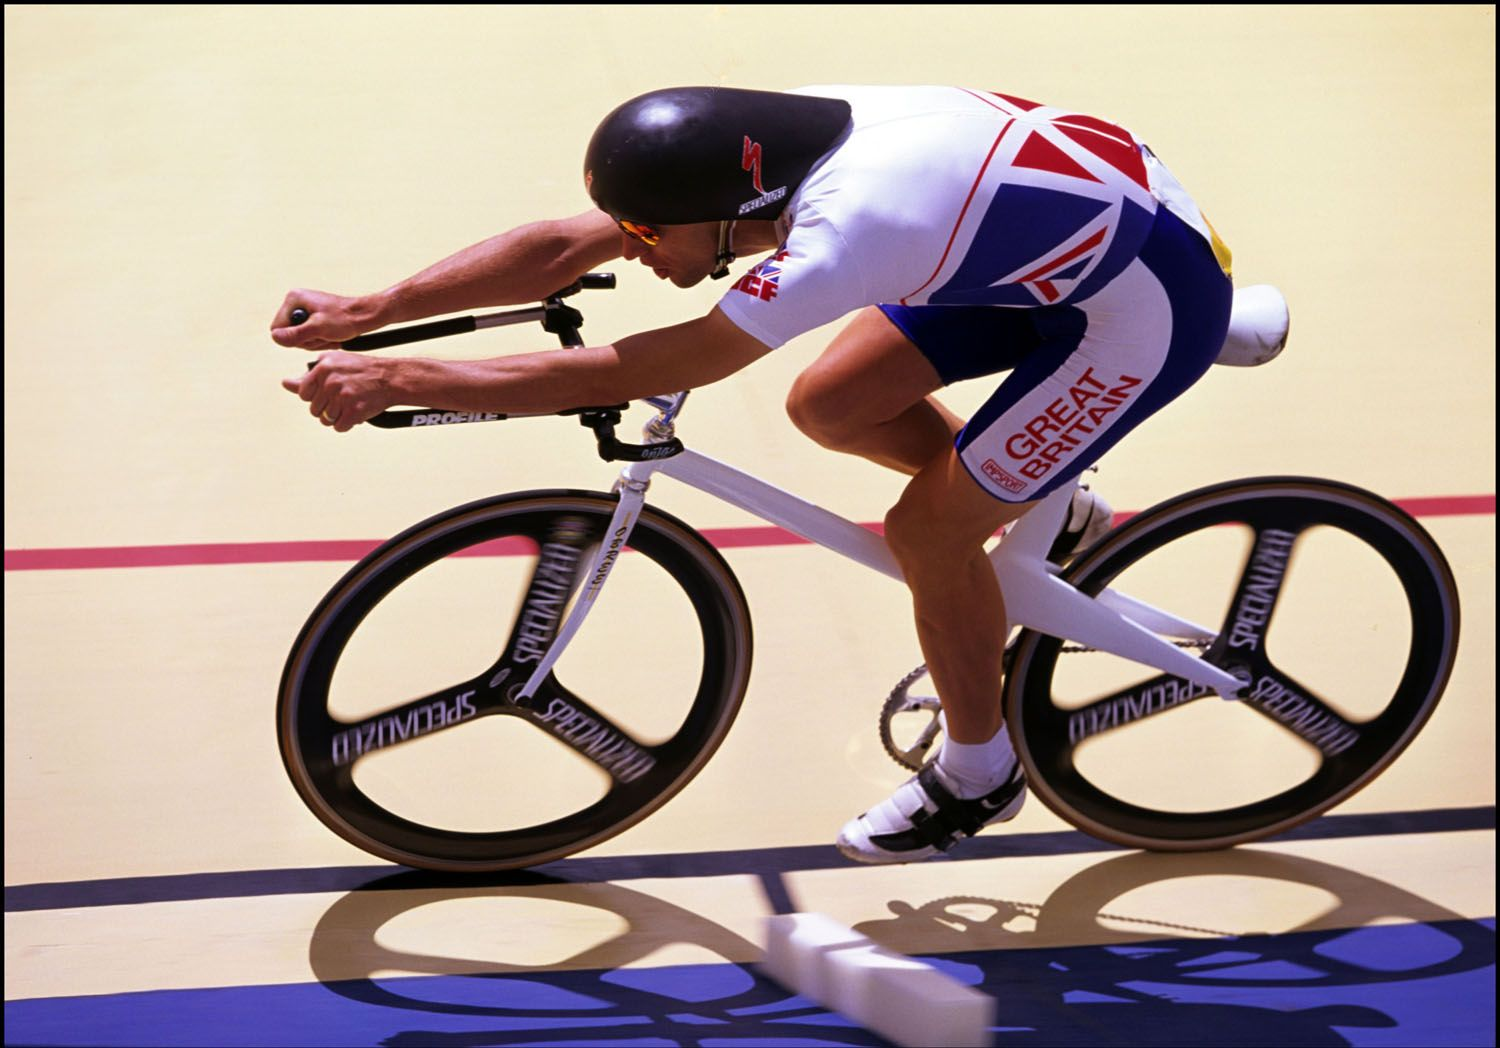 The (in)famous Superman position...world hour record